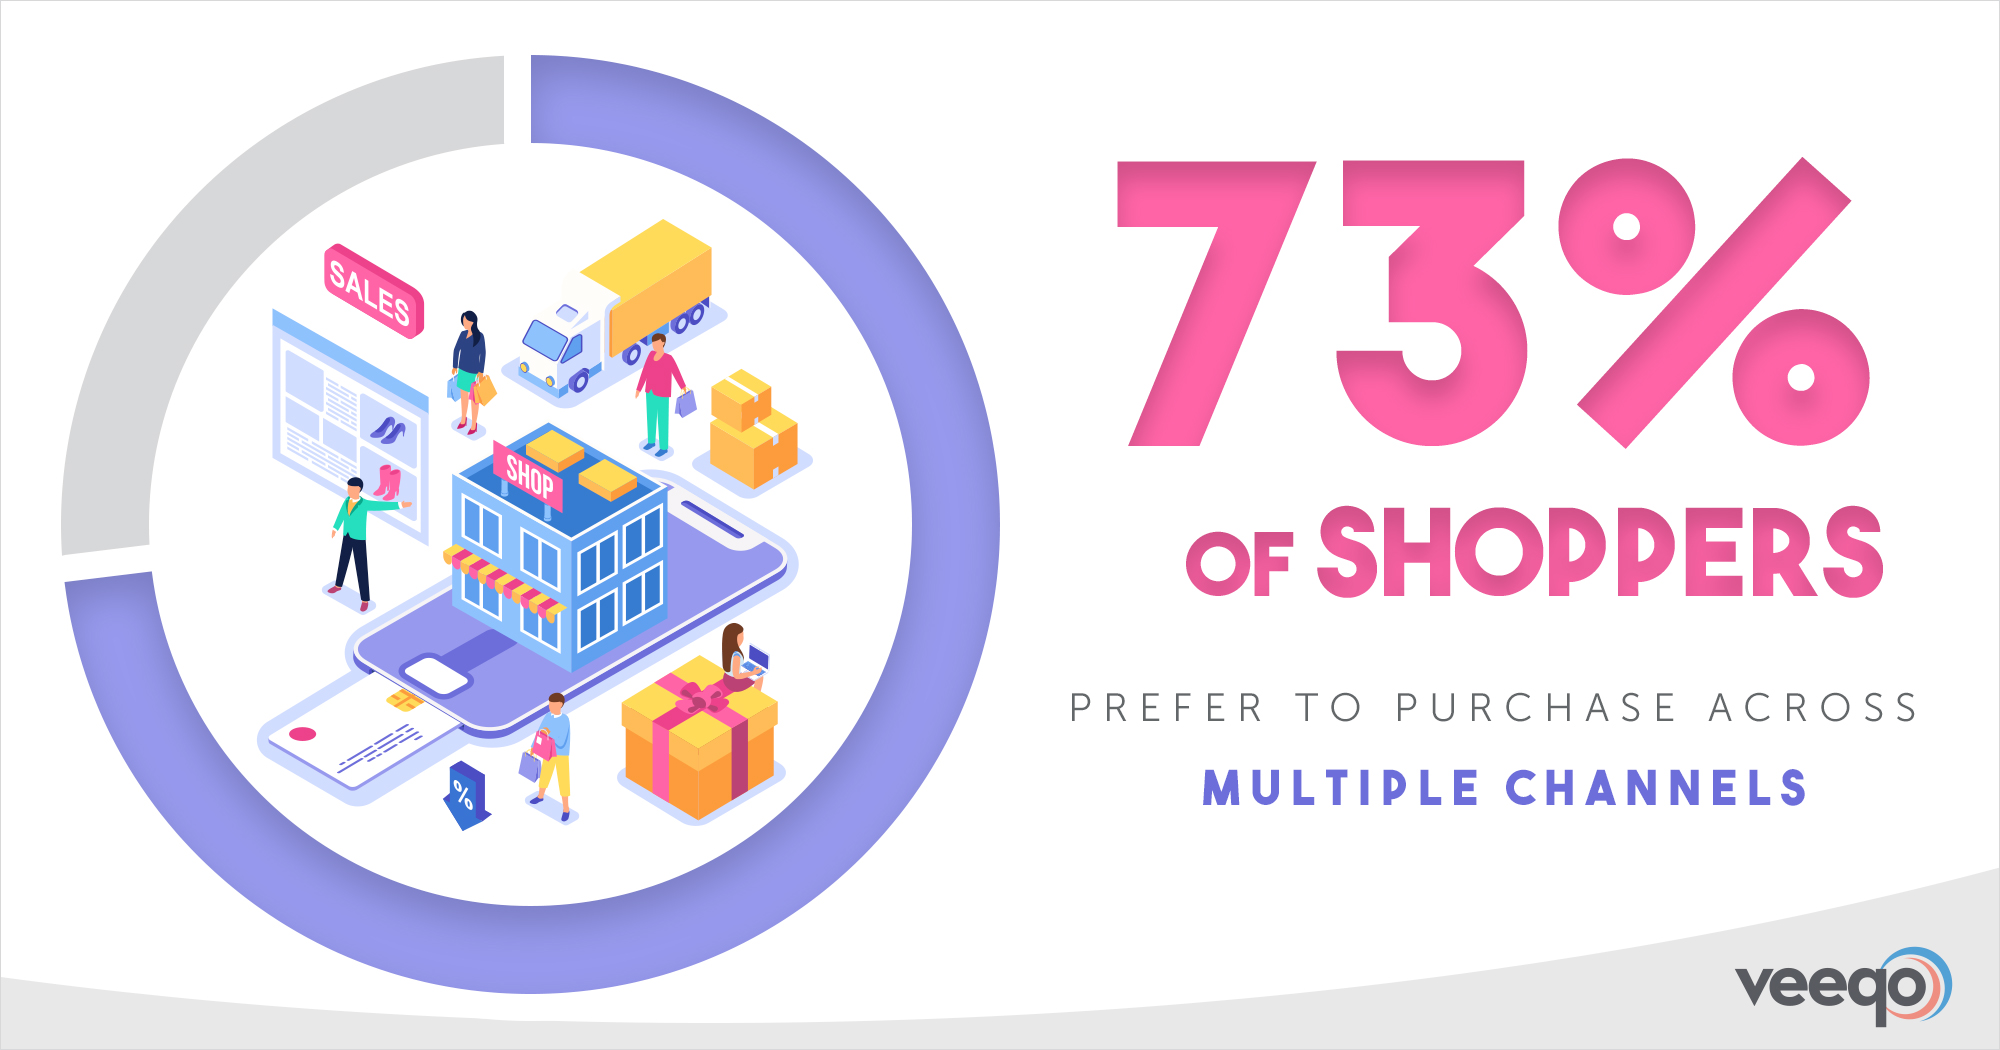 Omnichannel Retailing: 73% of shoppers prefer to purchase cross channel